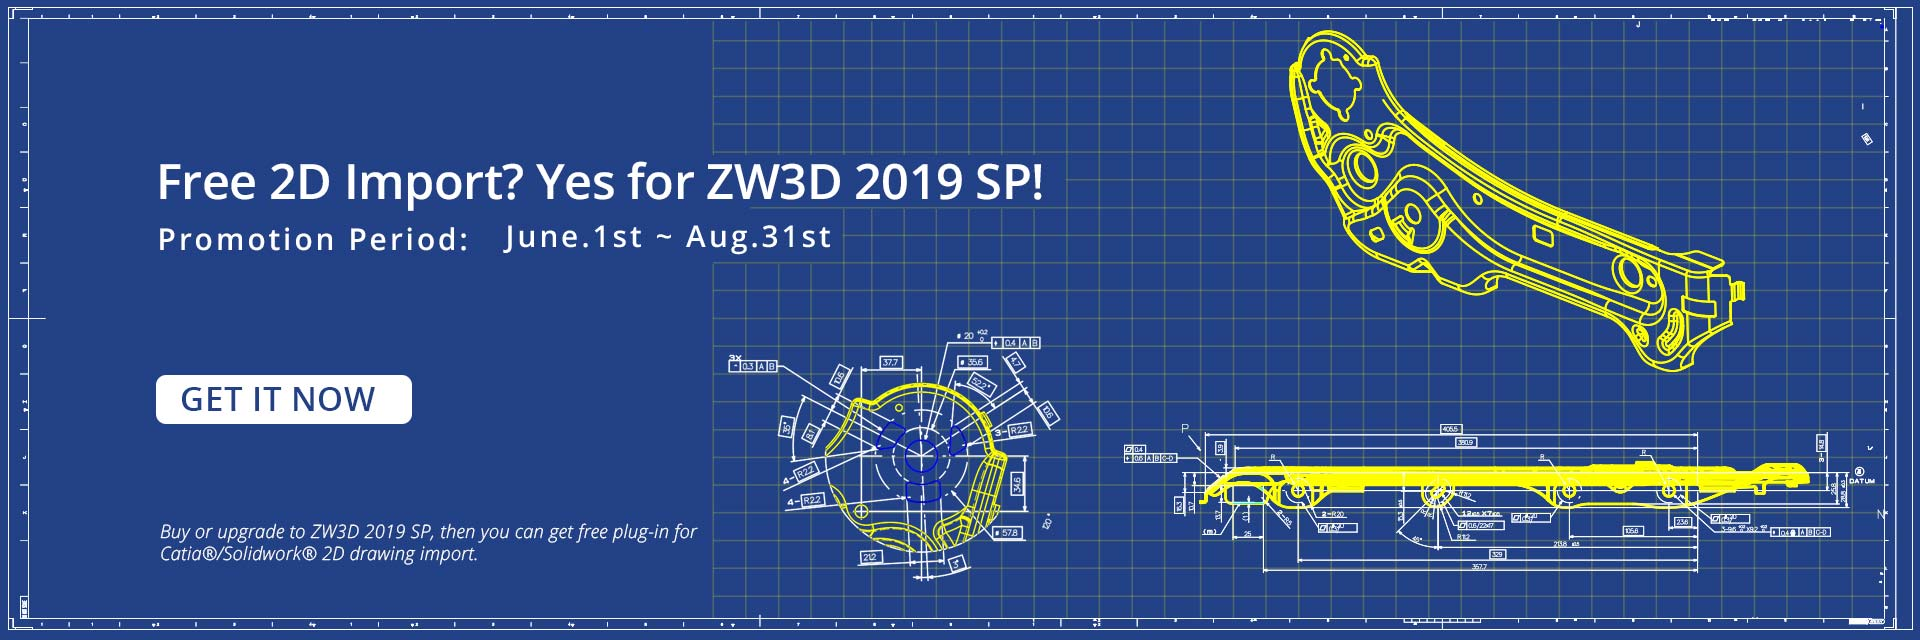 ZW3D|All-in-one, affordable CAD/CAM solution | ZWSOFT